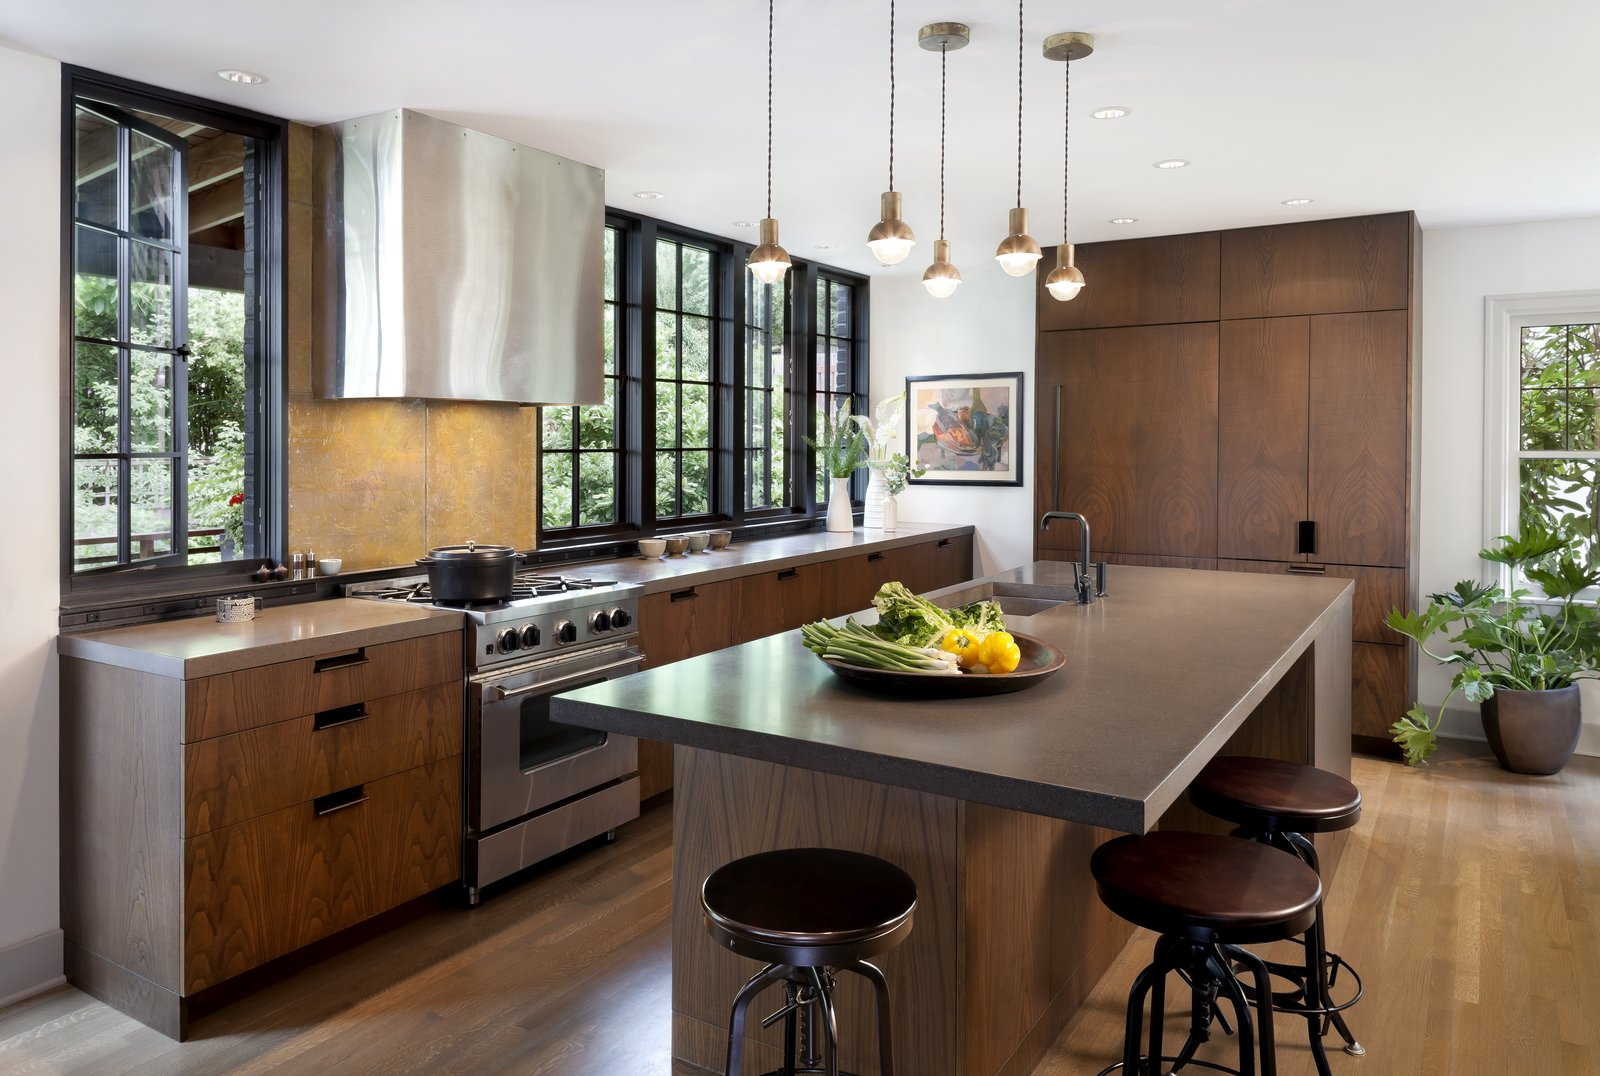 Kitchen Cabinets With Wood Floor